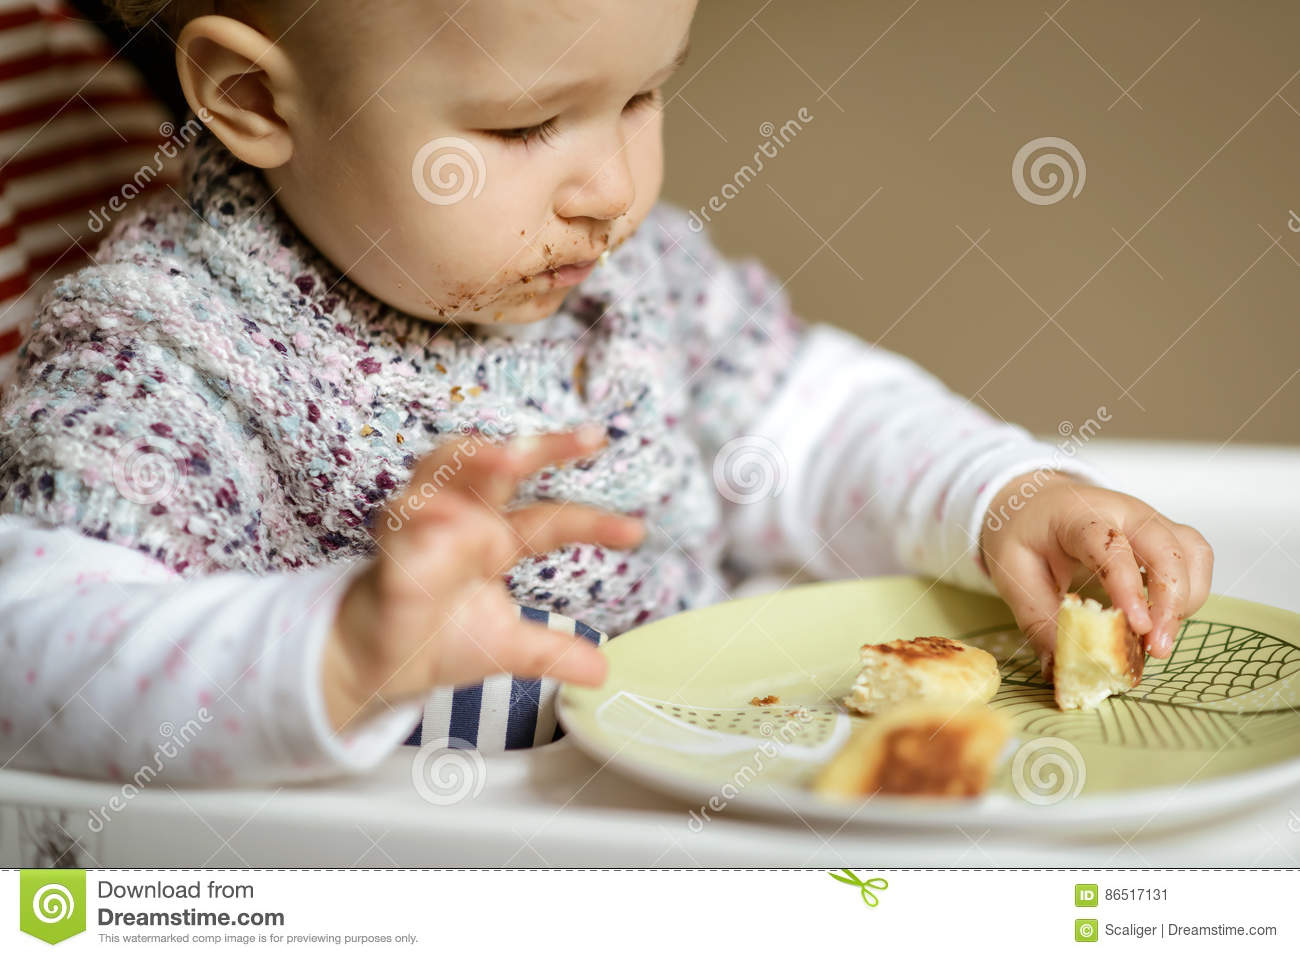 The Nice Baby With Messy Face Eating Cheese Cakes Stock ...